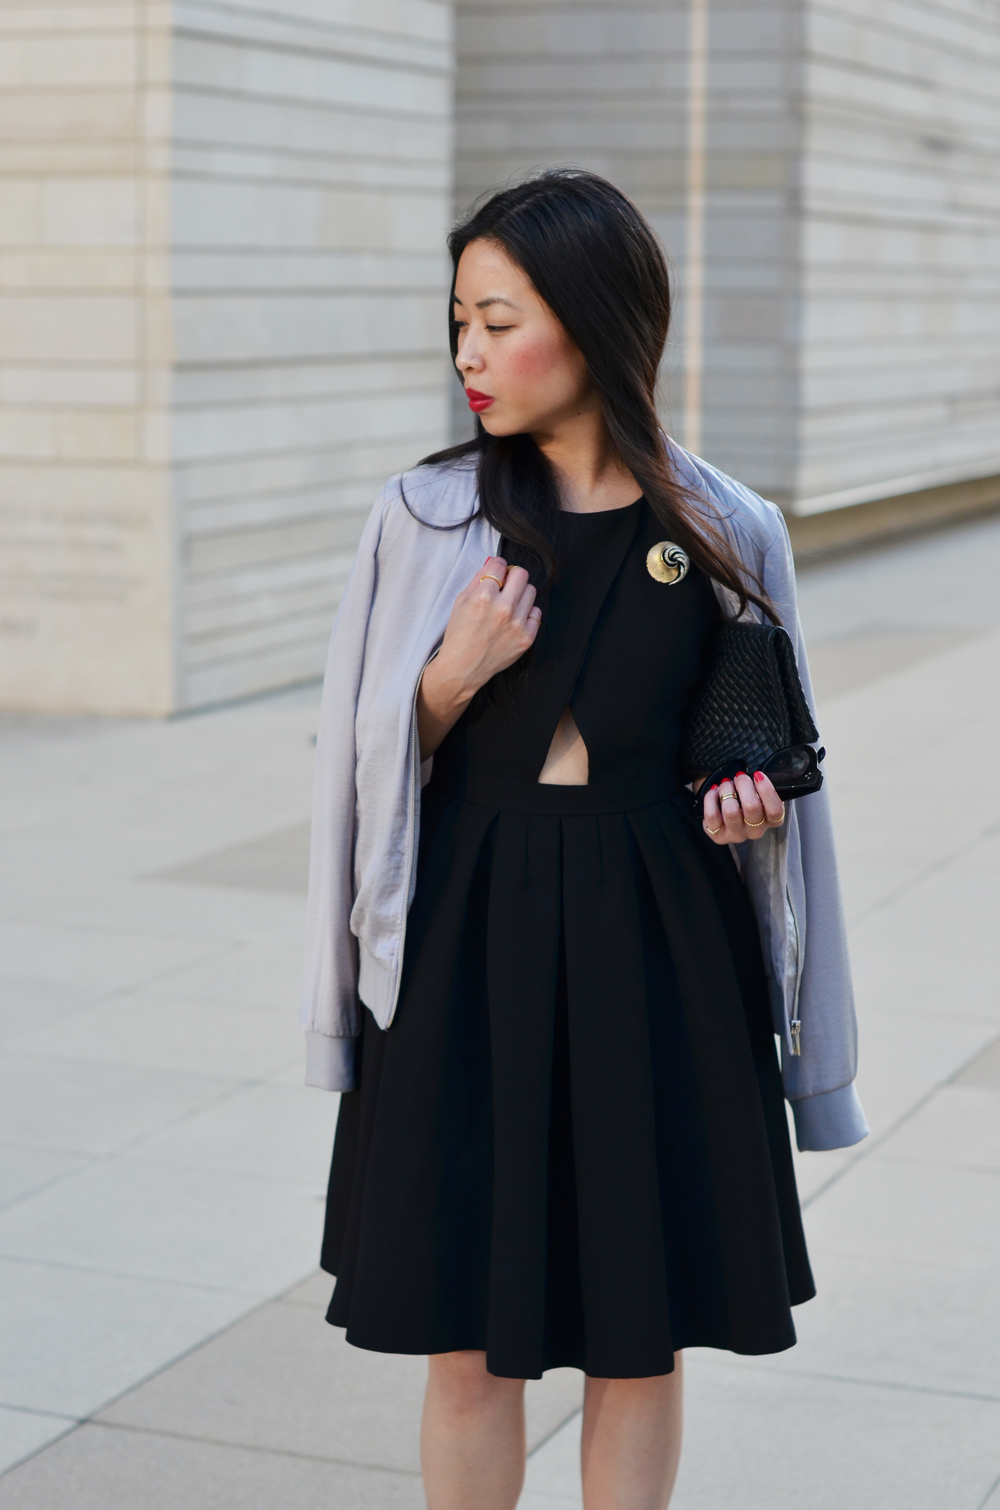 the LBD & bomber jacket -- jannadoan.com